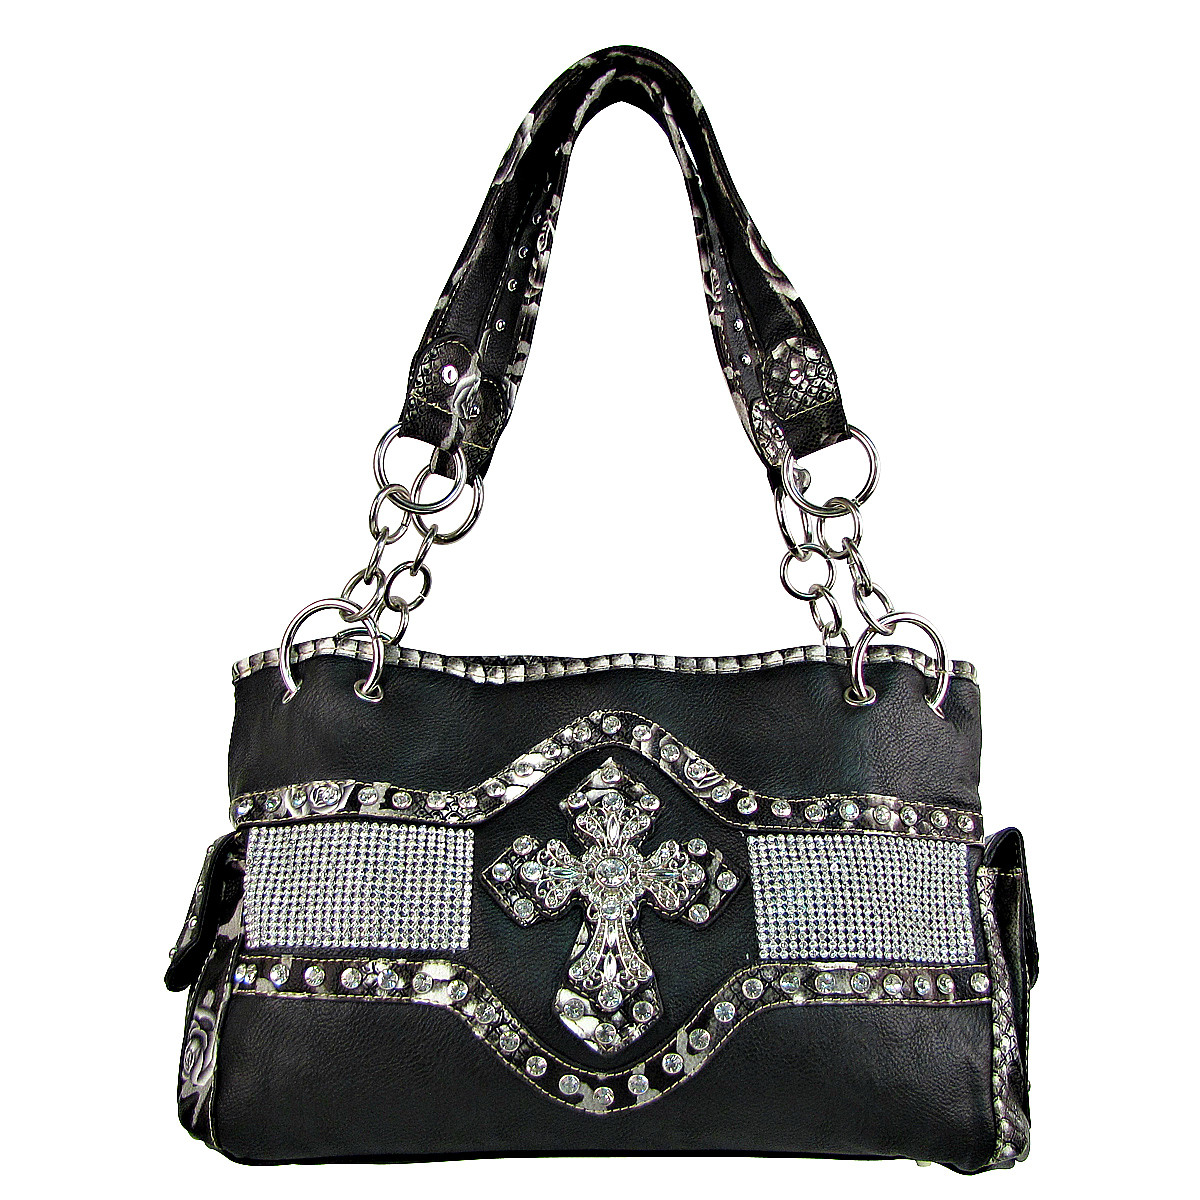 BLACK STUDDED RHINESTONE CROSS LOOK SHOULDER HANDBAG HB1-HL1063BLK